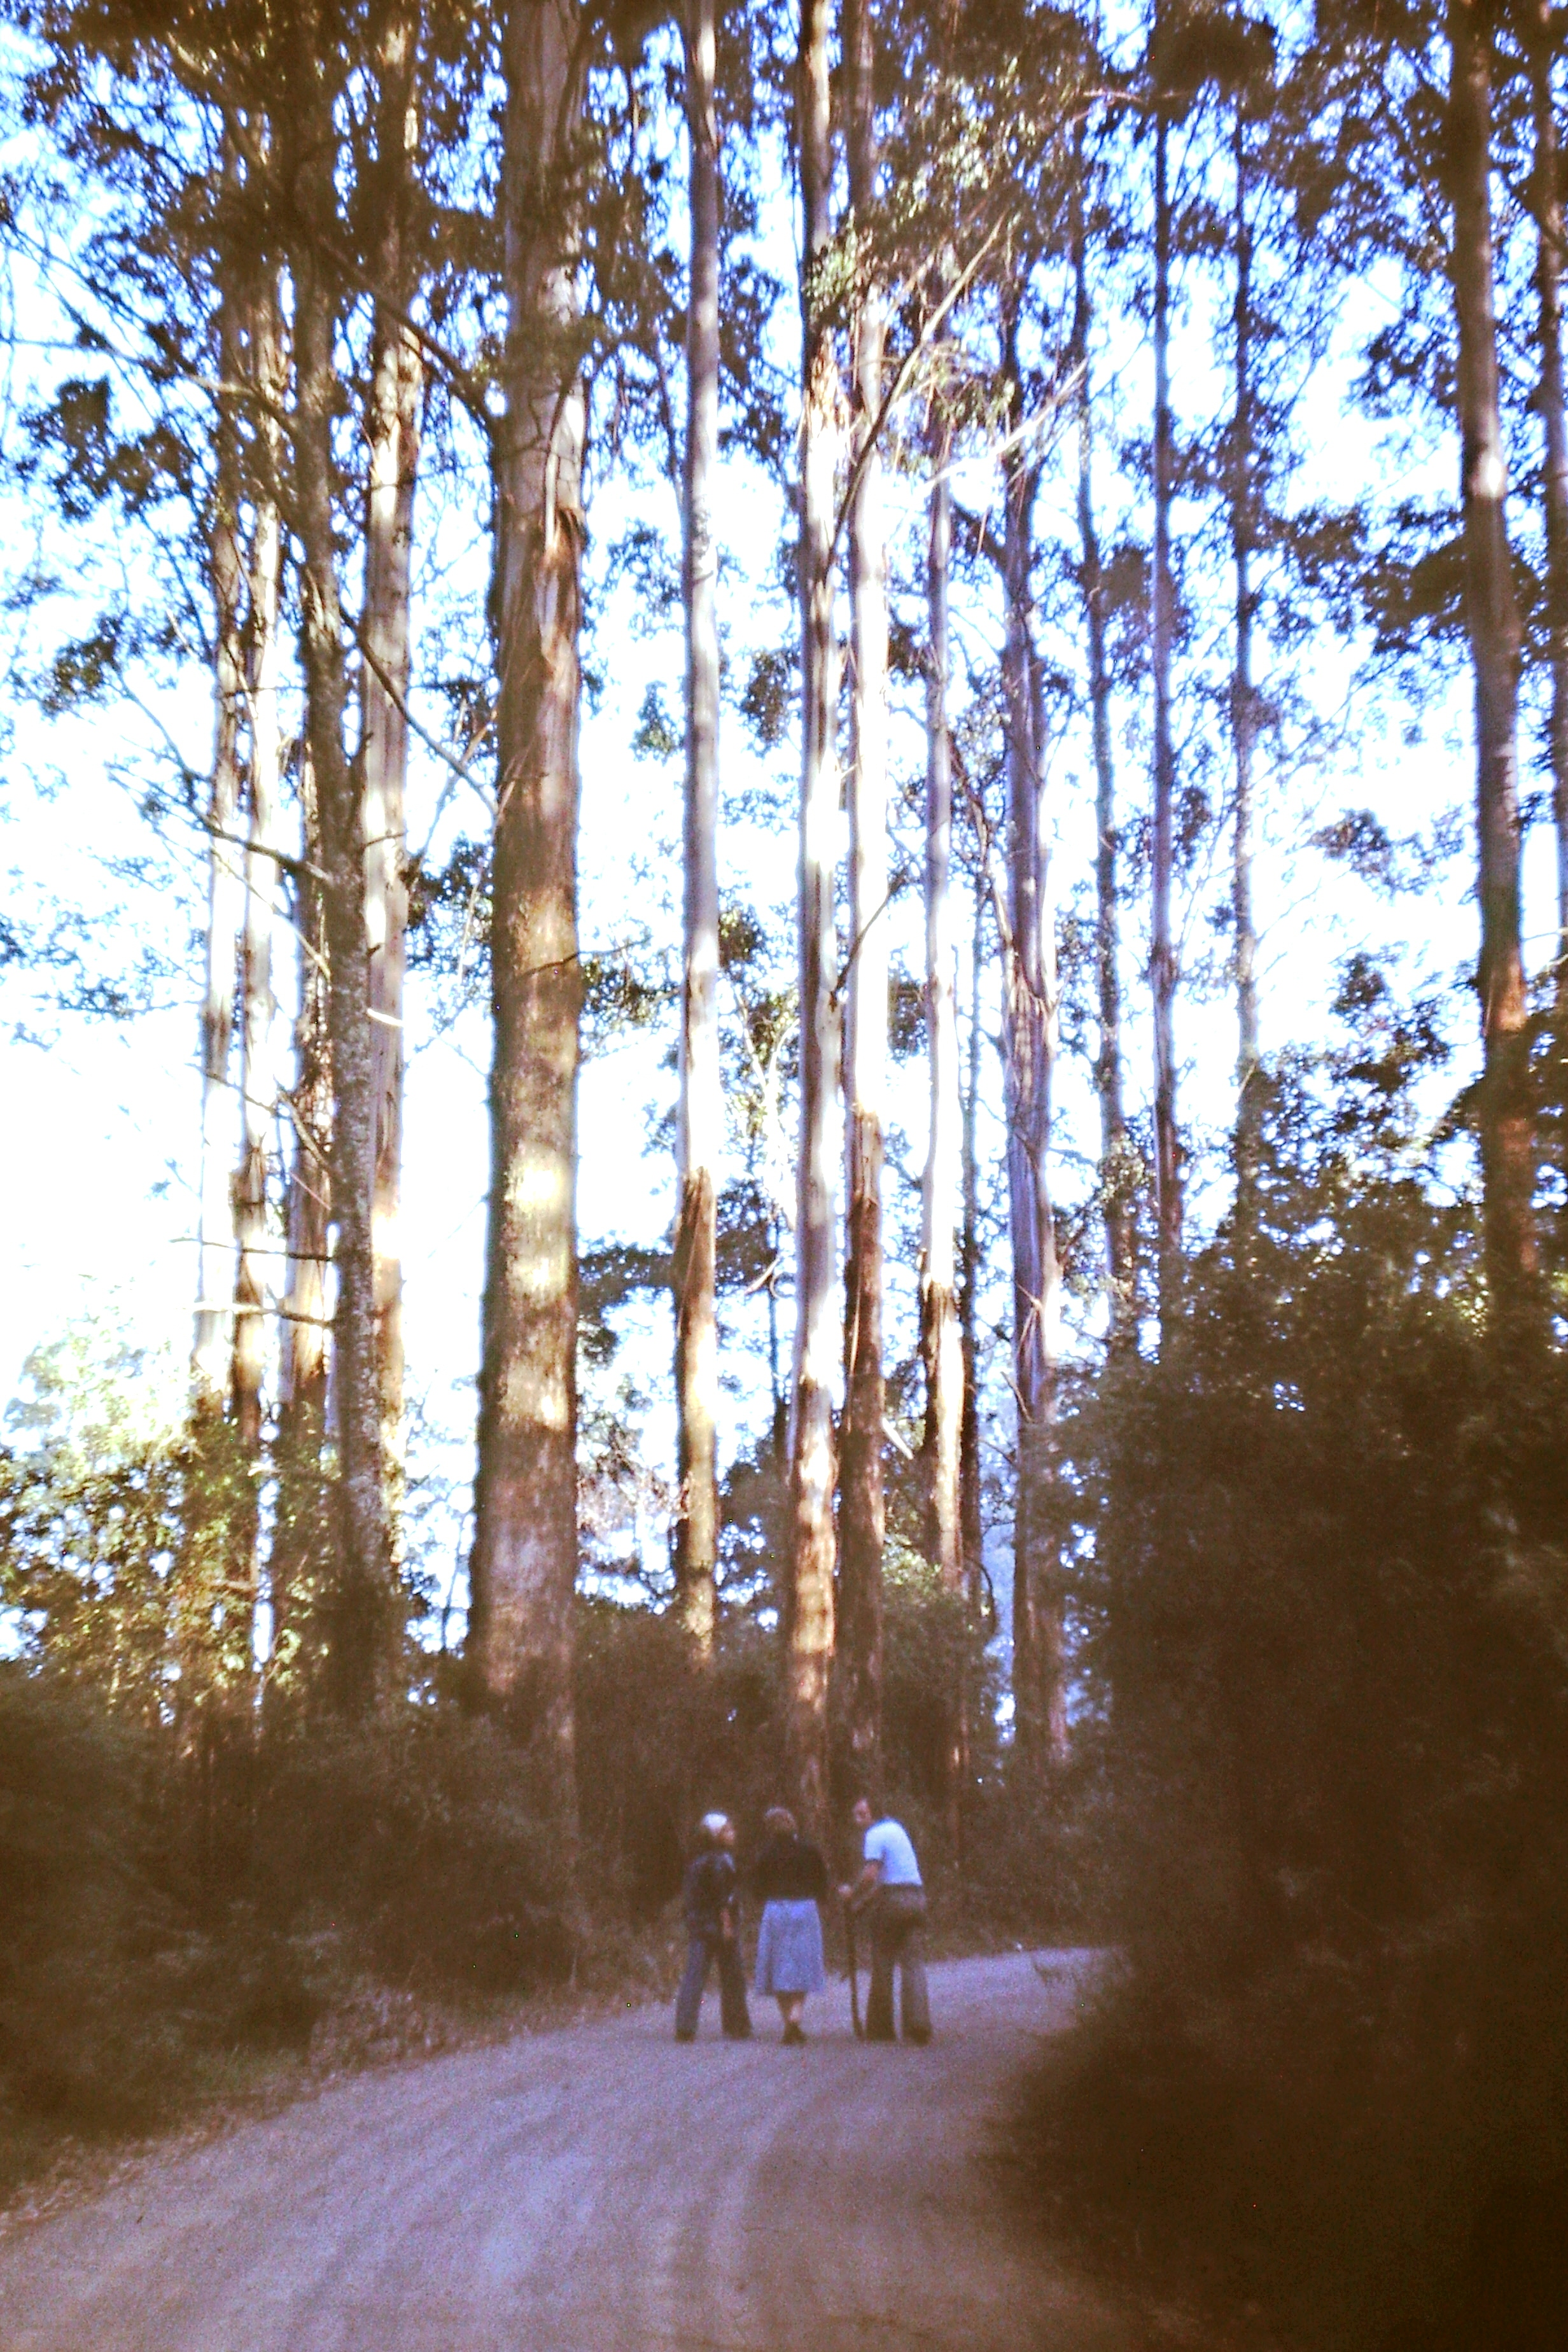 Candle gums